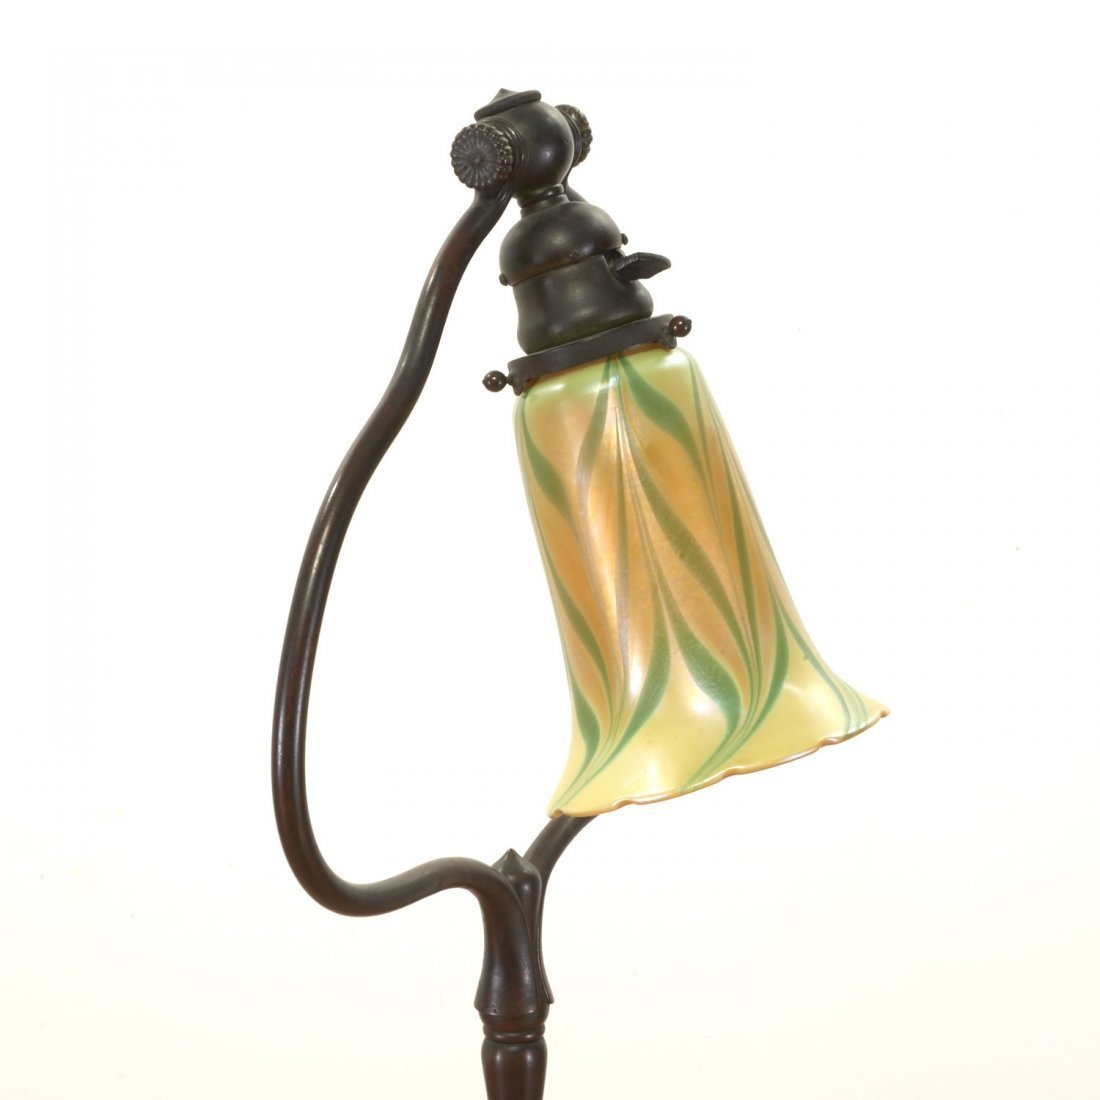 Tiffany style bronze harp and favrile floor lamp - 3